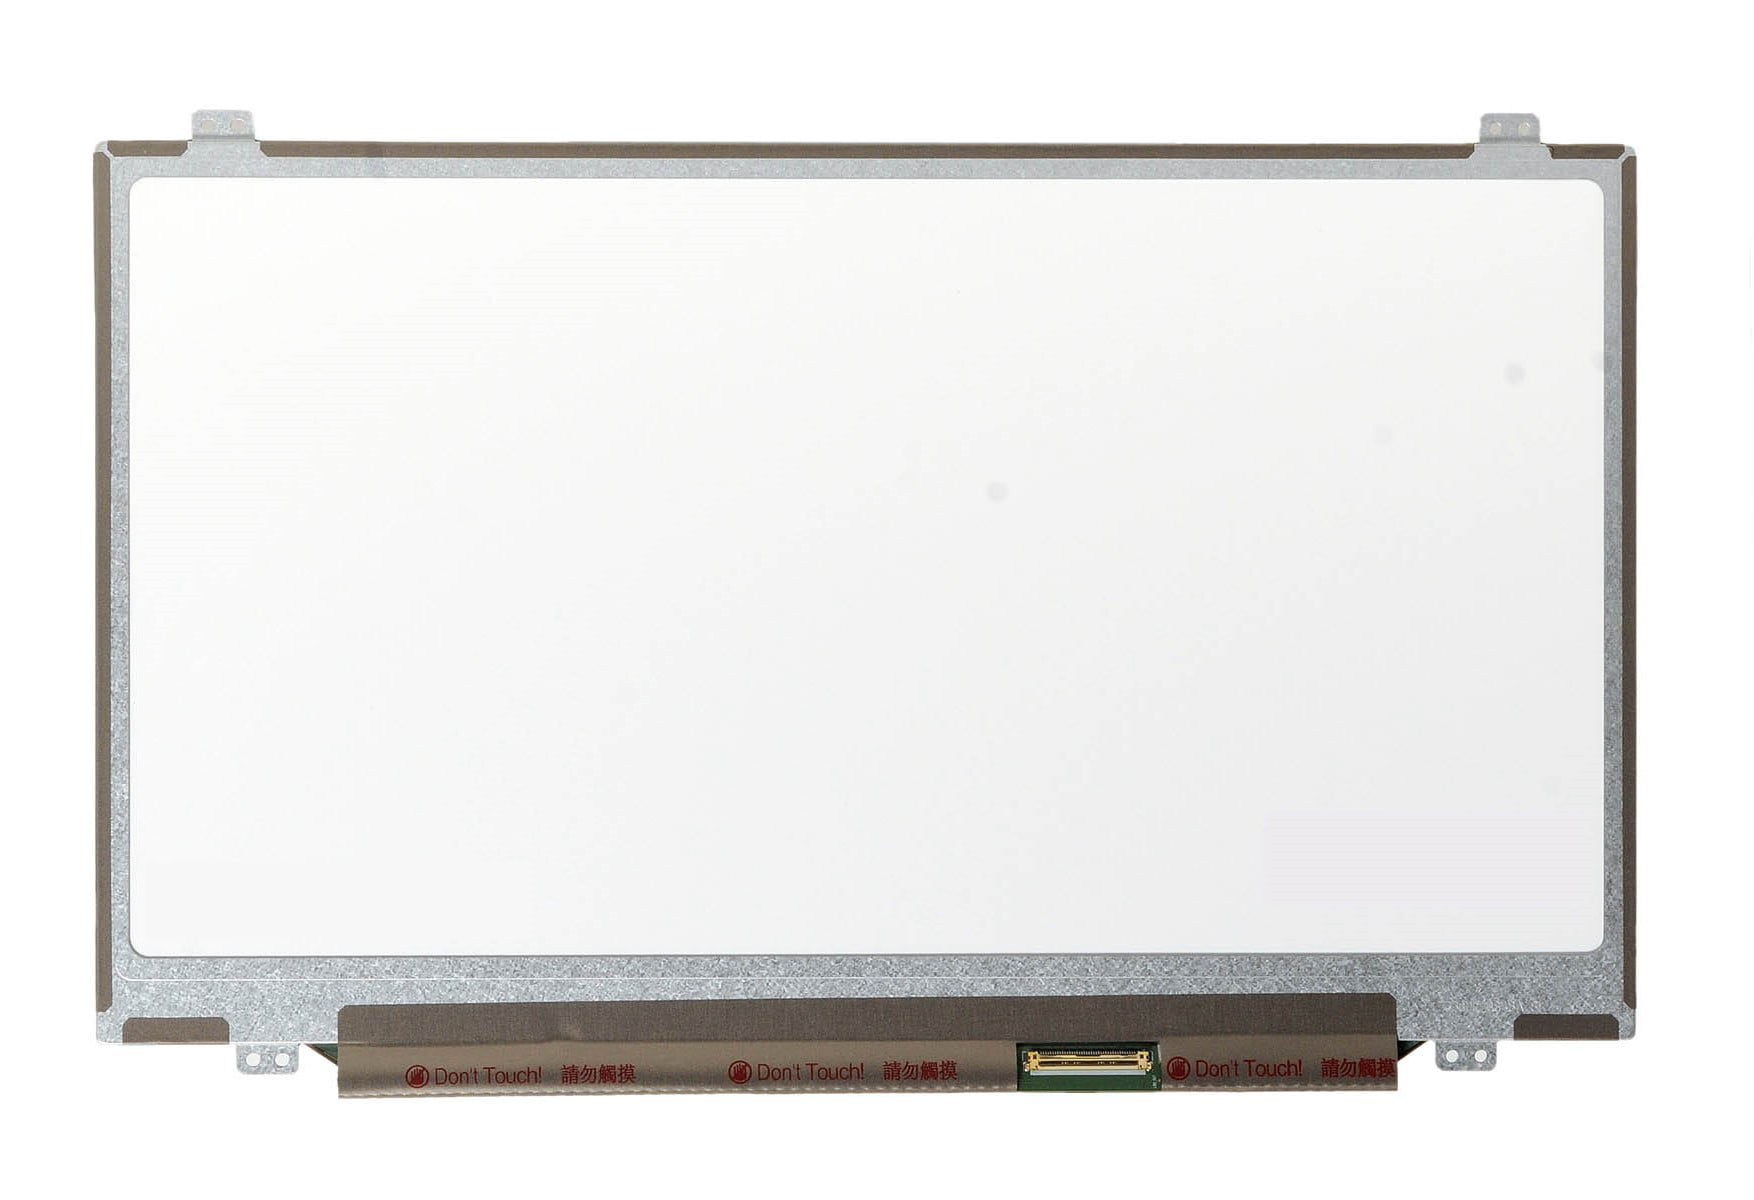 LAPTOP LCD SCREEN FOR LG PHILIPS LP140WH2(TL)(L2) 14.0